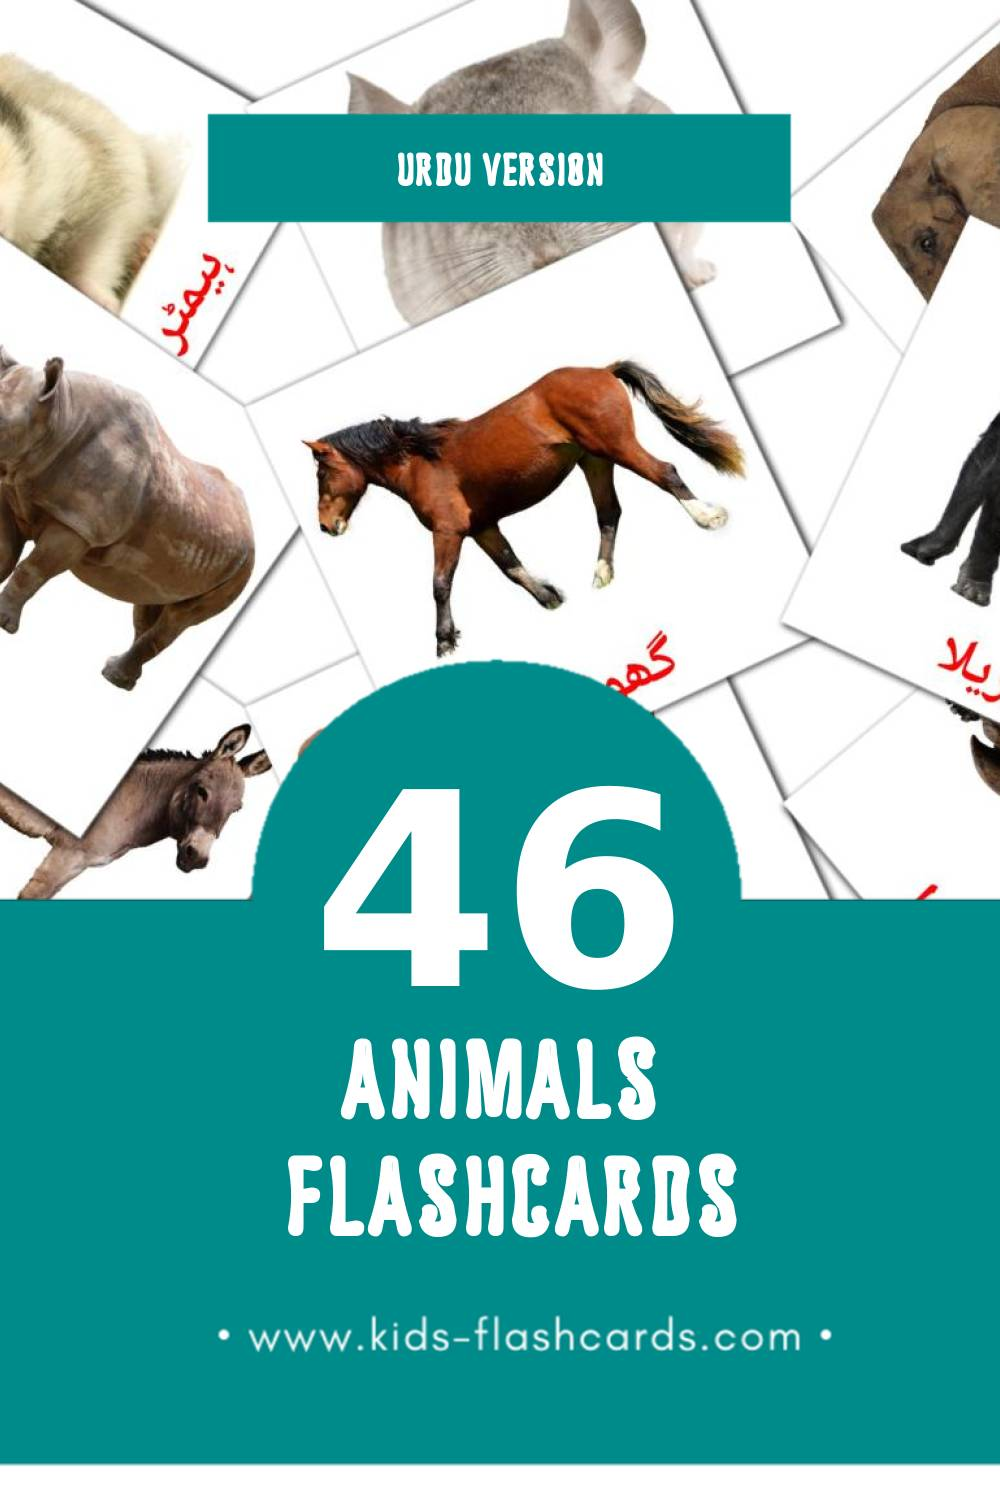 Visual جانور Flashcards for Toddlers (10 cards in Urdu)